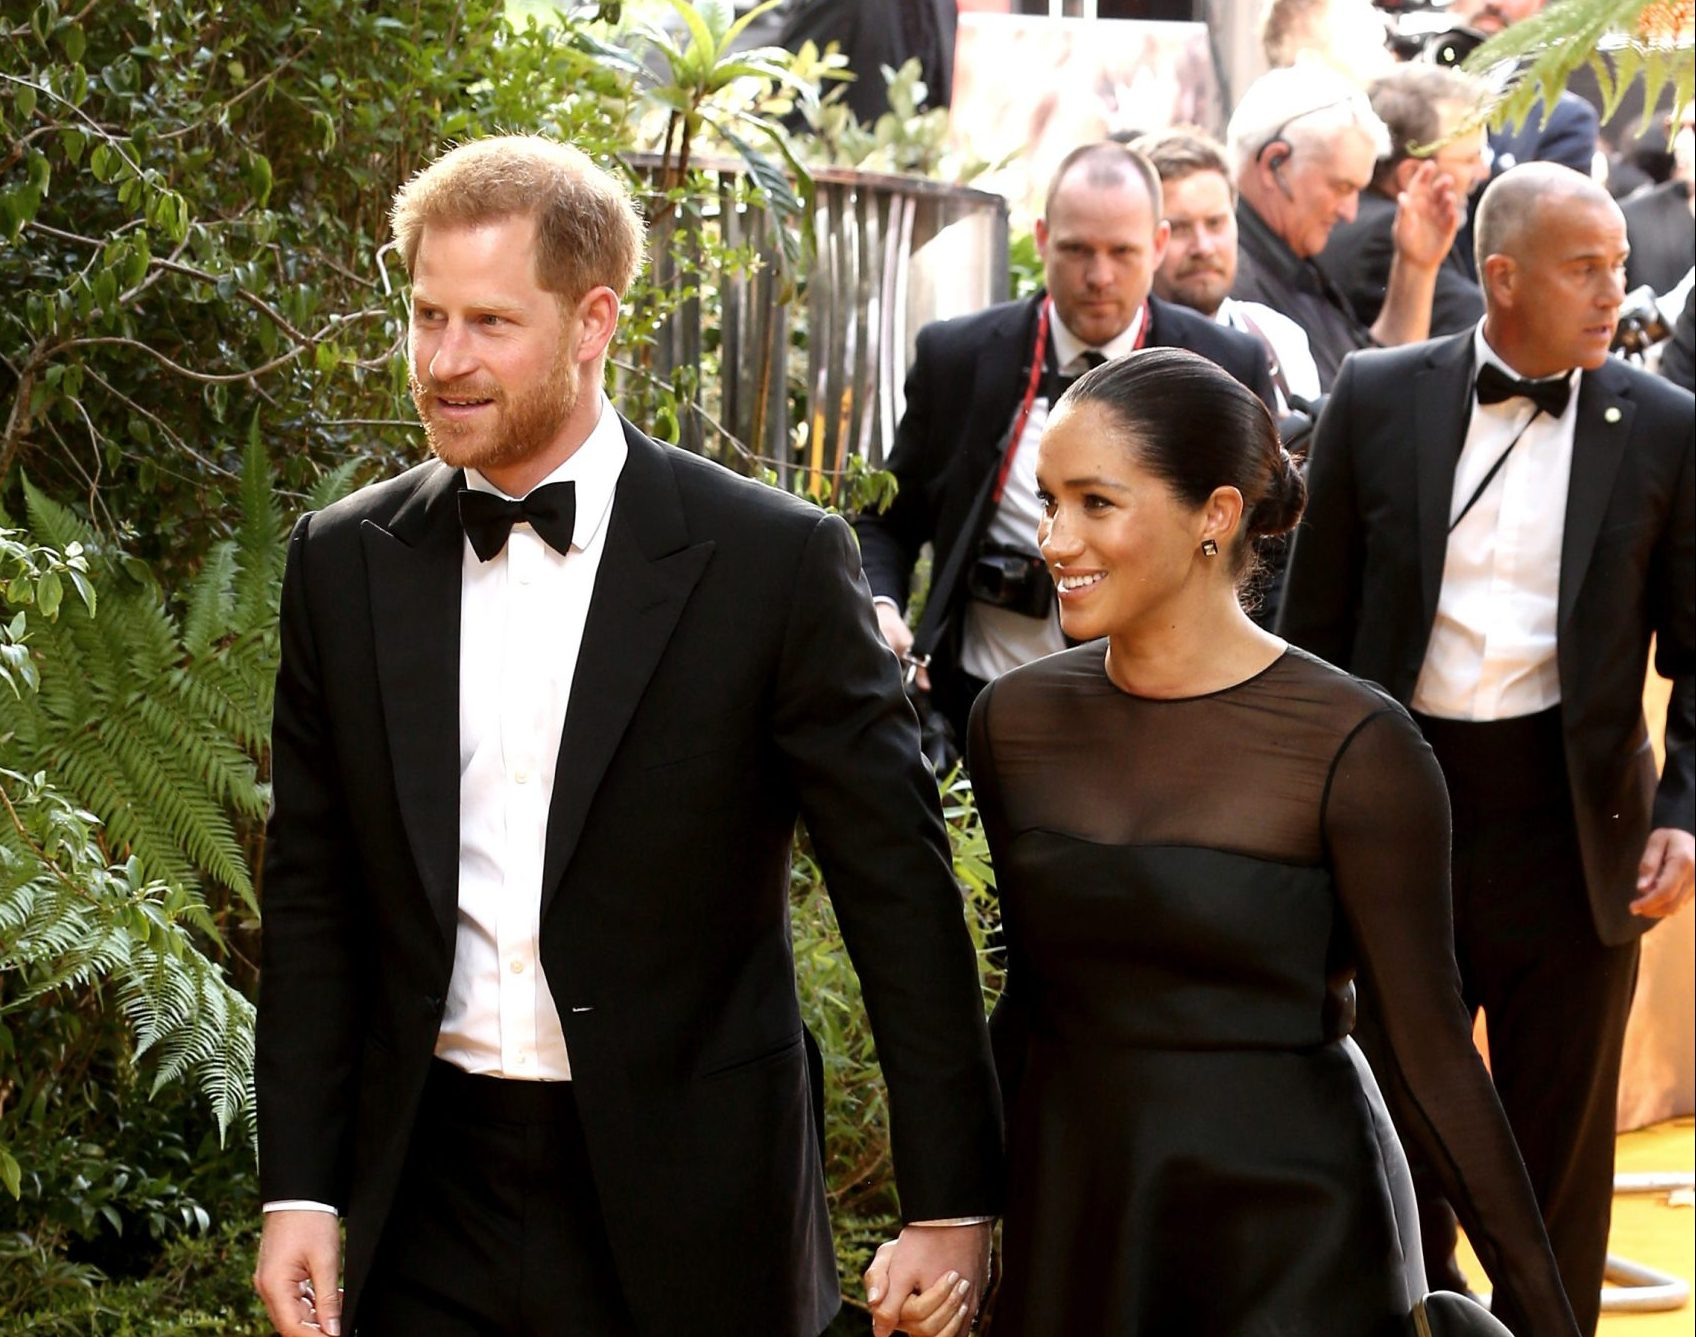 Prince Harry and Duchess Meghan attend a red carpet event, smiling. He wears a tuxedo and she wears a black dress with a sheer neckline and sleeves.